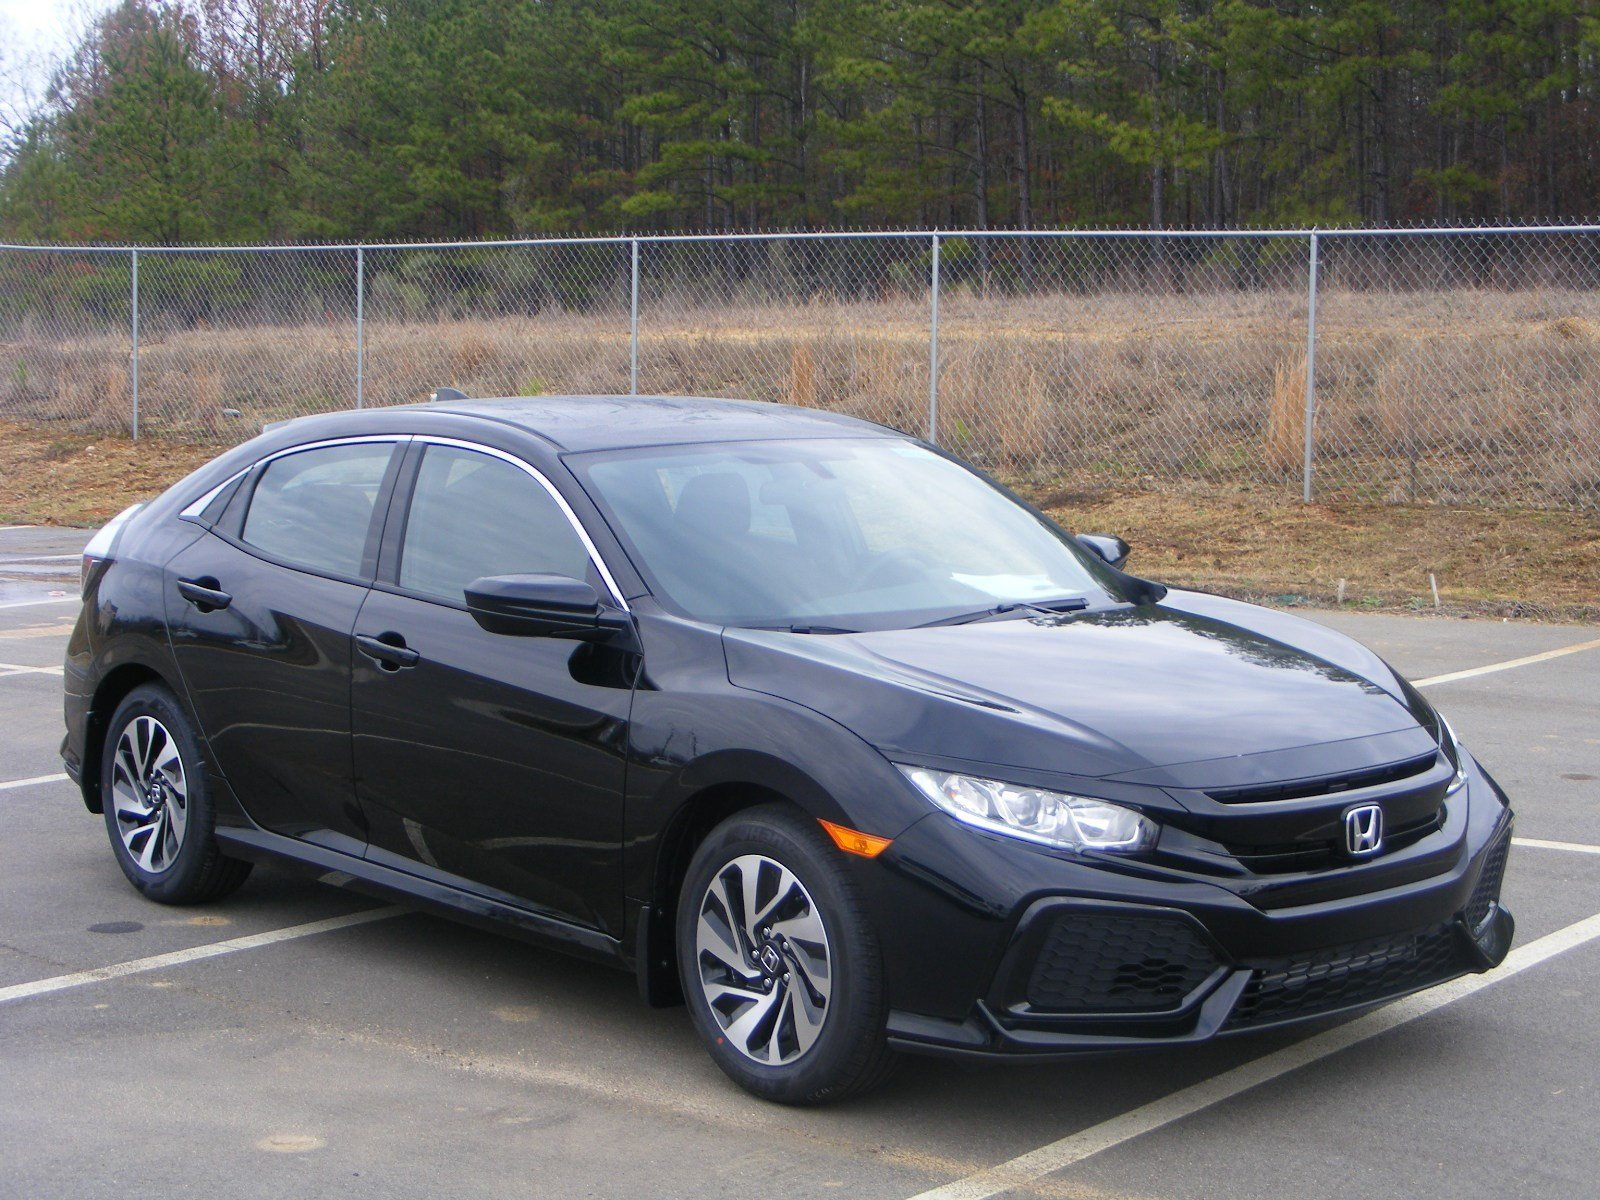 new 2017 honda civic hatchback lx hatchback in milledgeville h17161 butler auto group. Black Bedroom Furniture Sets. Home Design Ideas